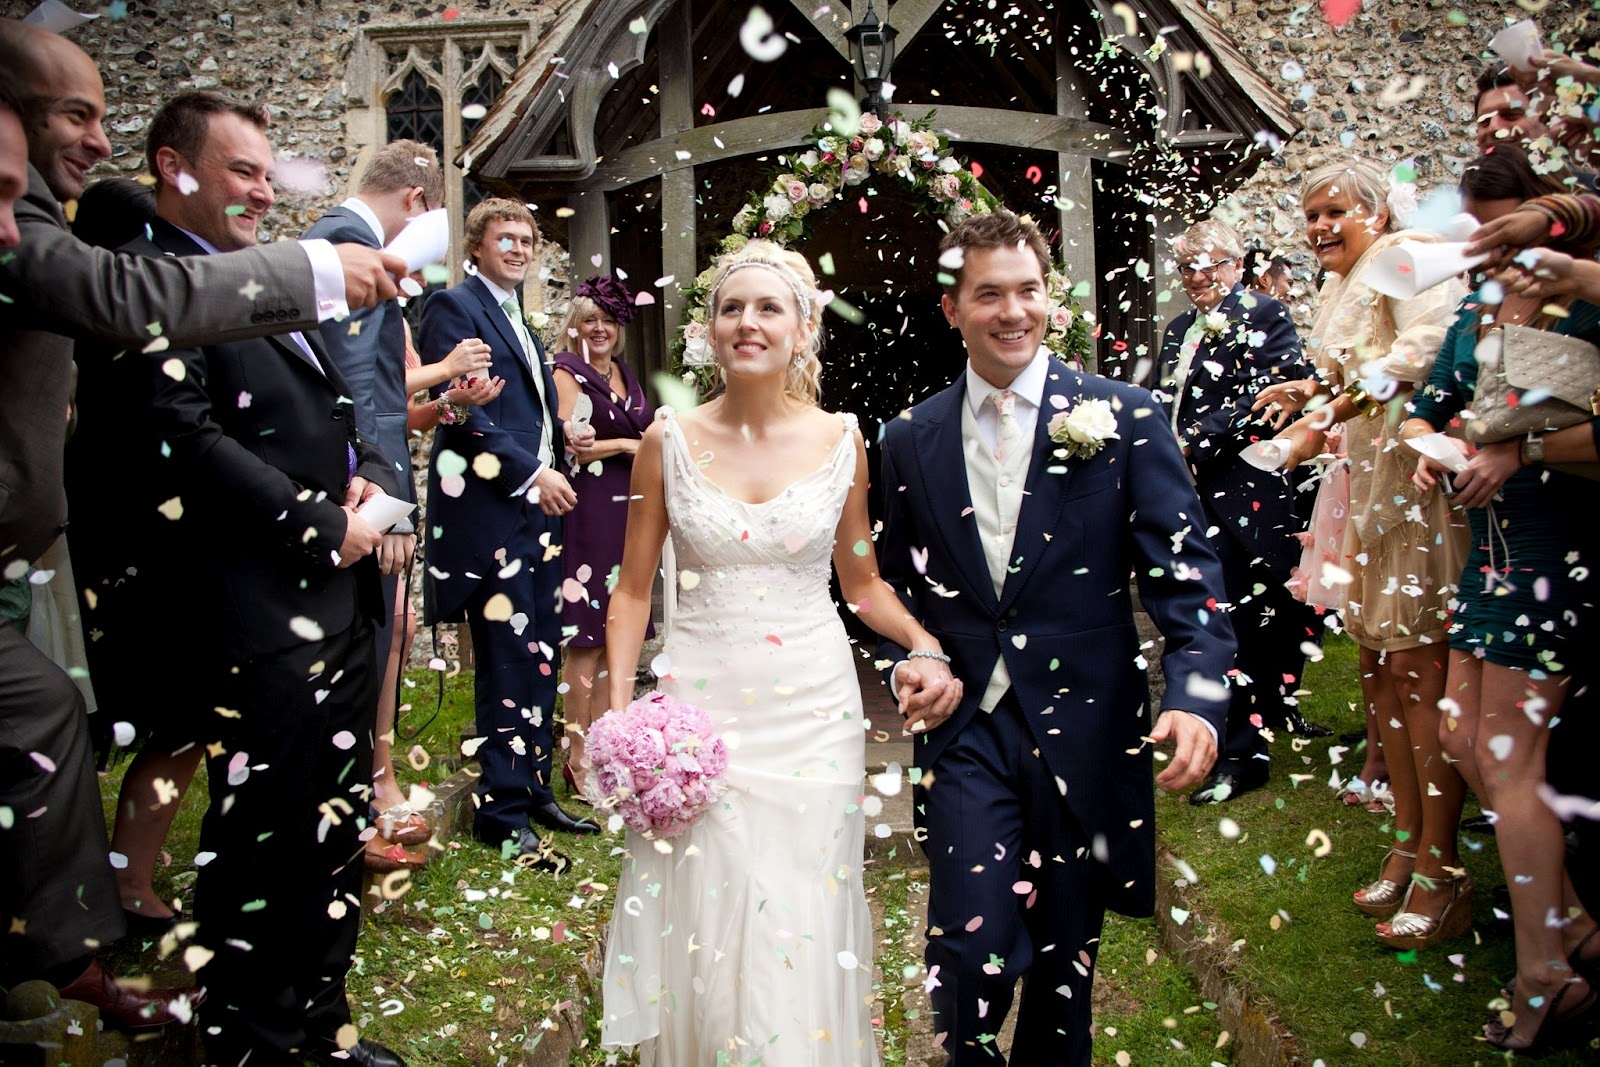 Confetti Flutters To Bring Joy And Luck Your New Life As Man Wife